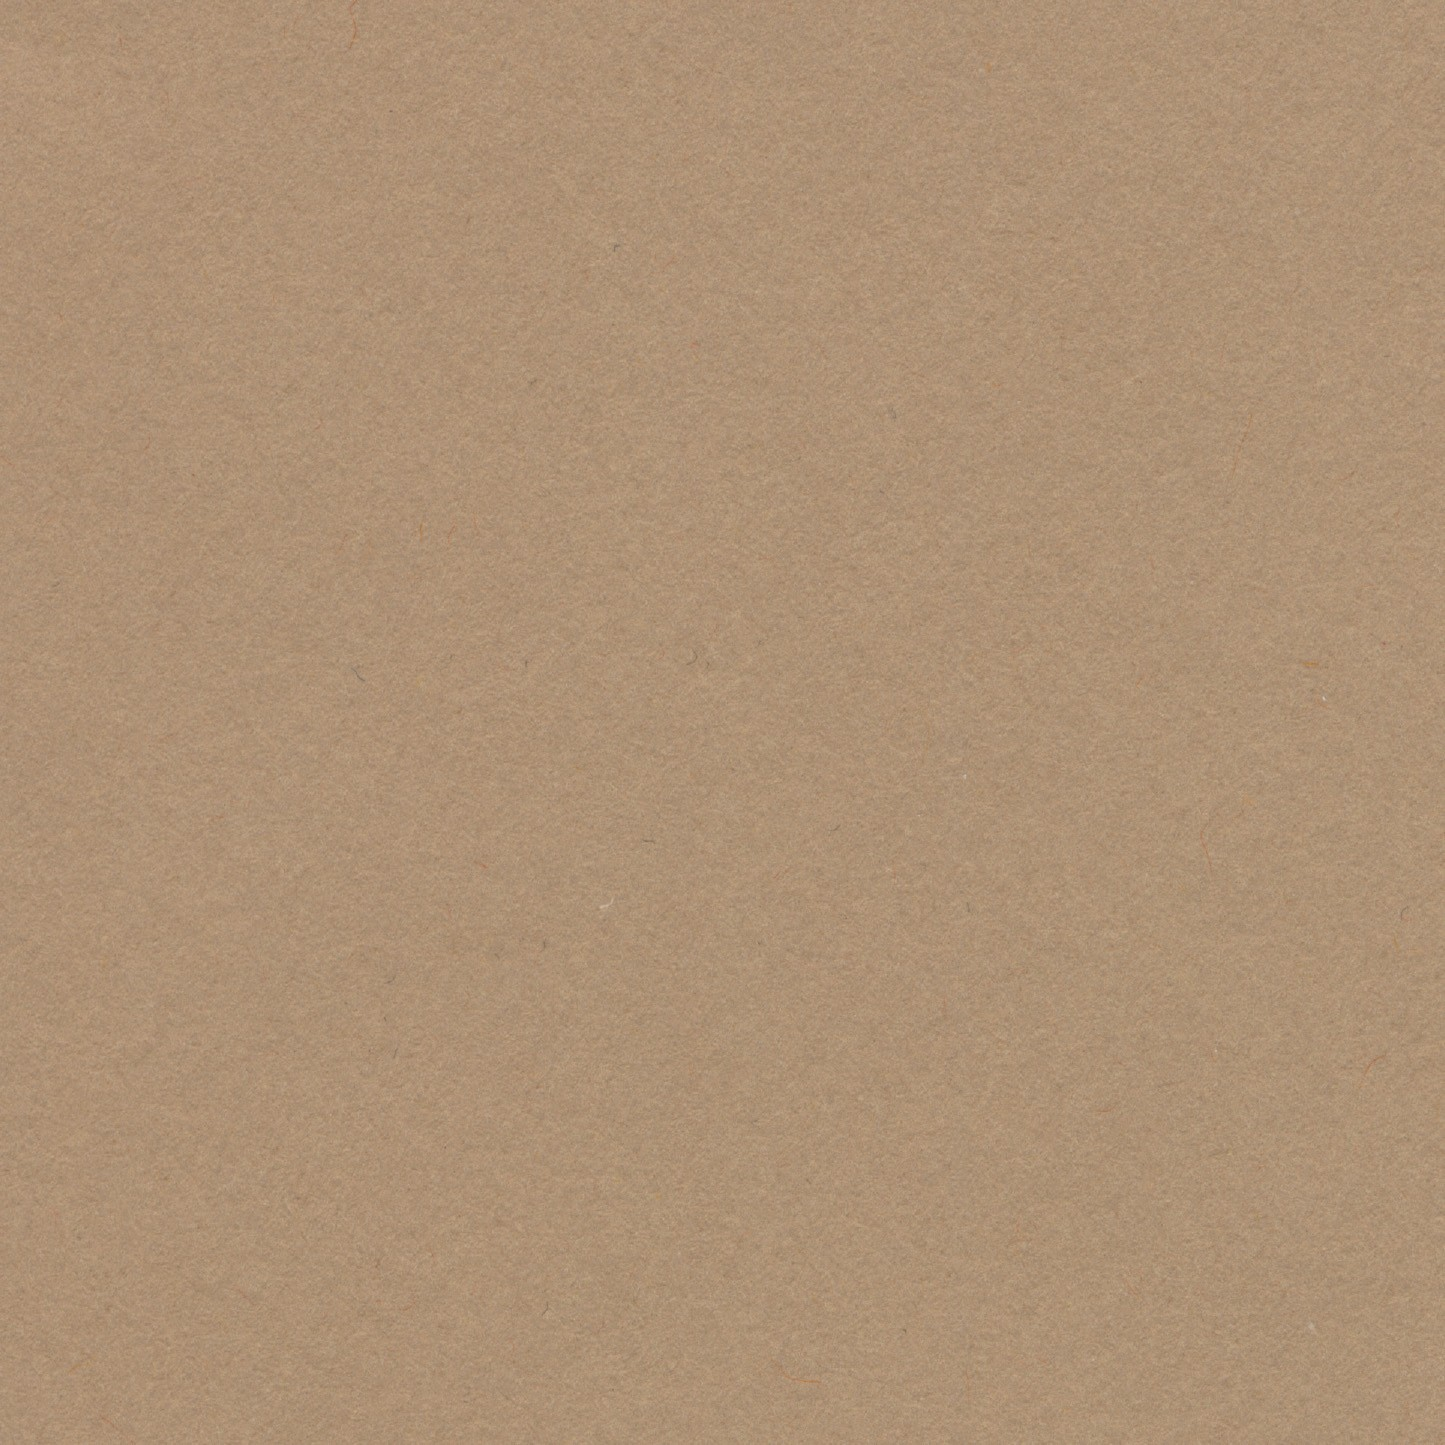 Brown - Wheat 135gsm